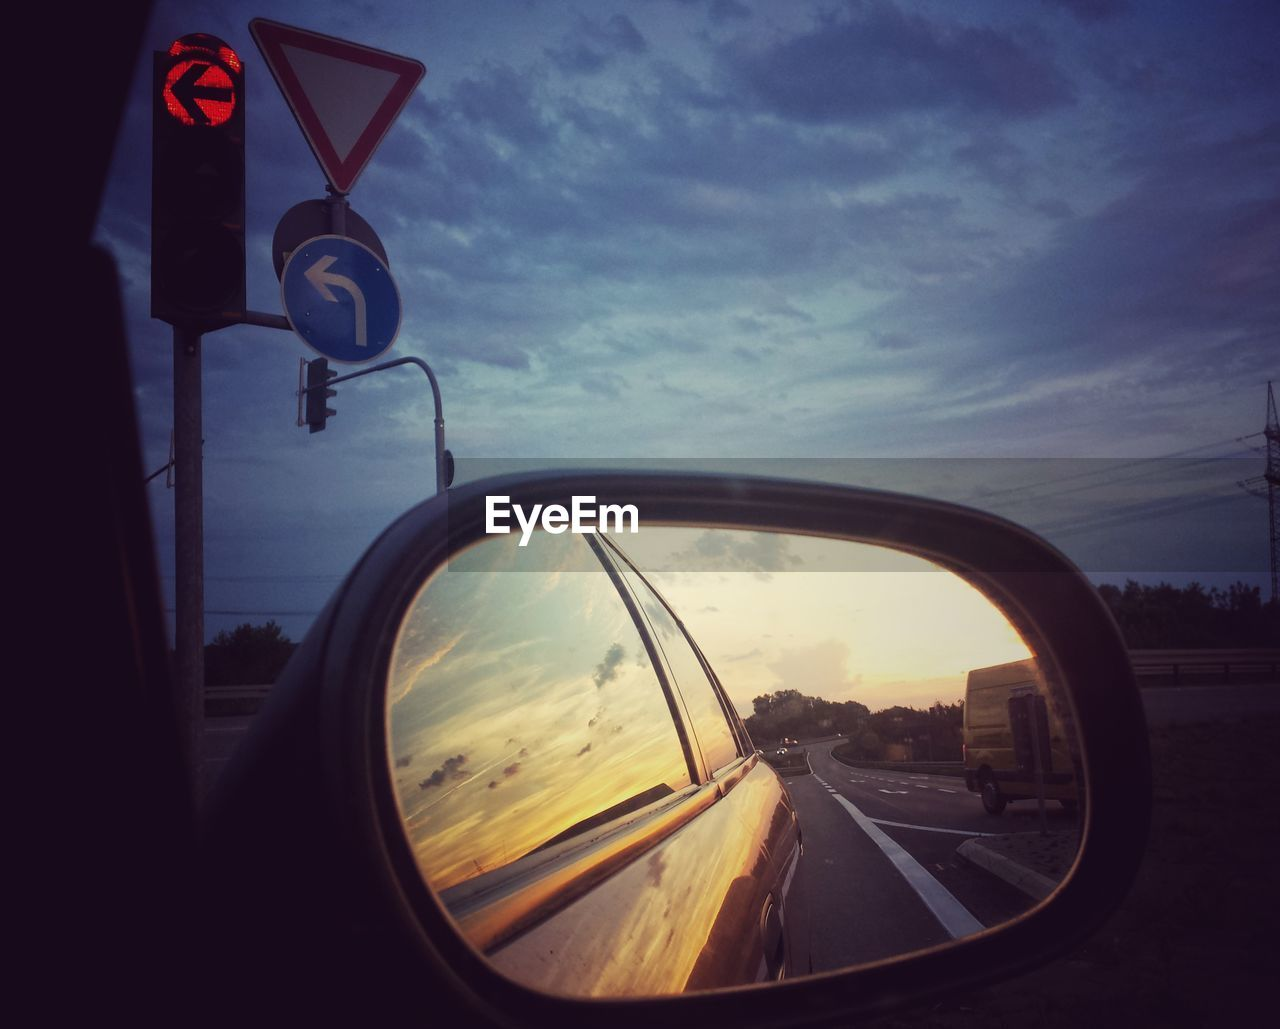 transportation, sky, sign, cloud - sky, road, land vehicle, mode of transportation, motor vehicle, car, side-view mirror, reflection, nature, mirror, glass - material, road sign, sunset, no people, communication, street, city, guidance, outdoors, vehicle mirror, light, road trip